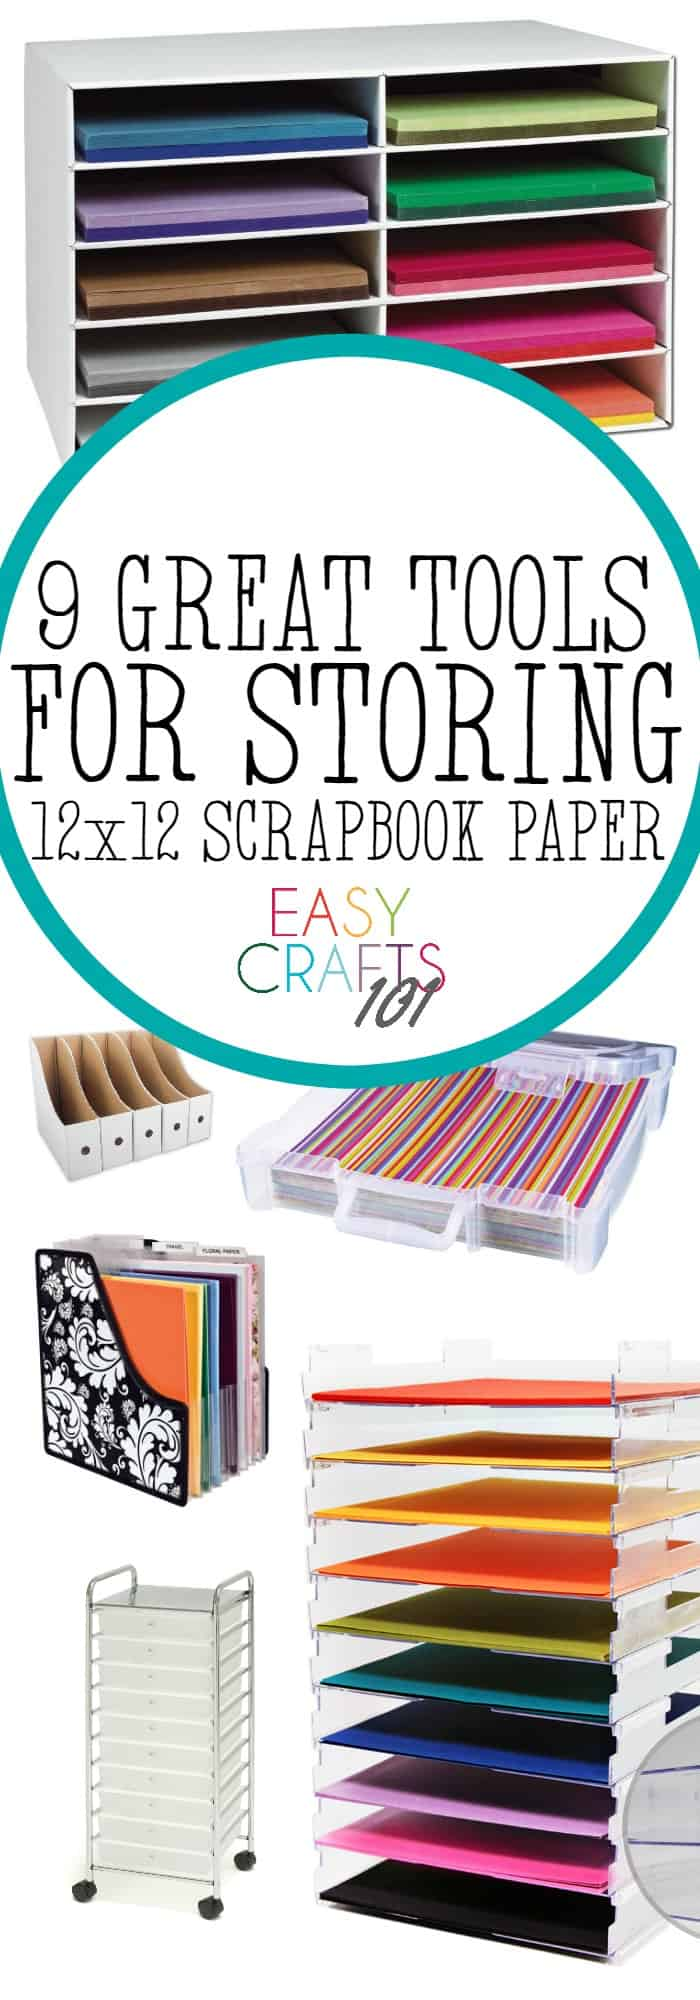 Ways to Store Scrapbook Paper